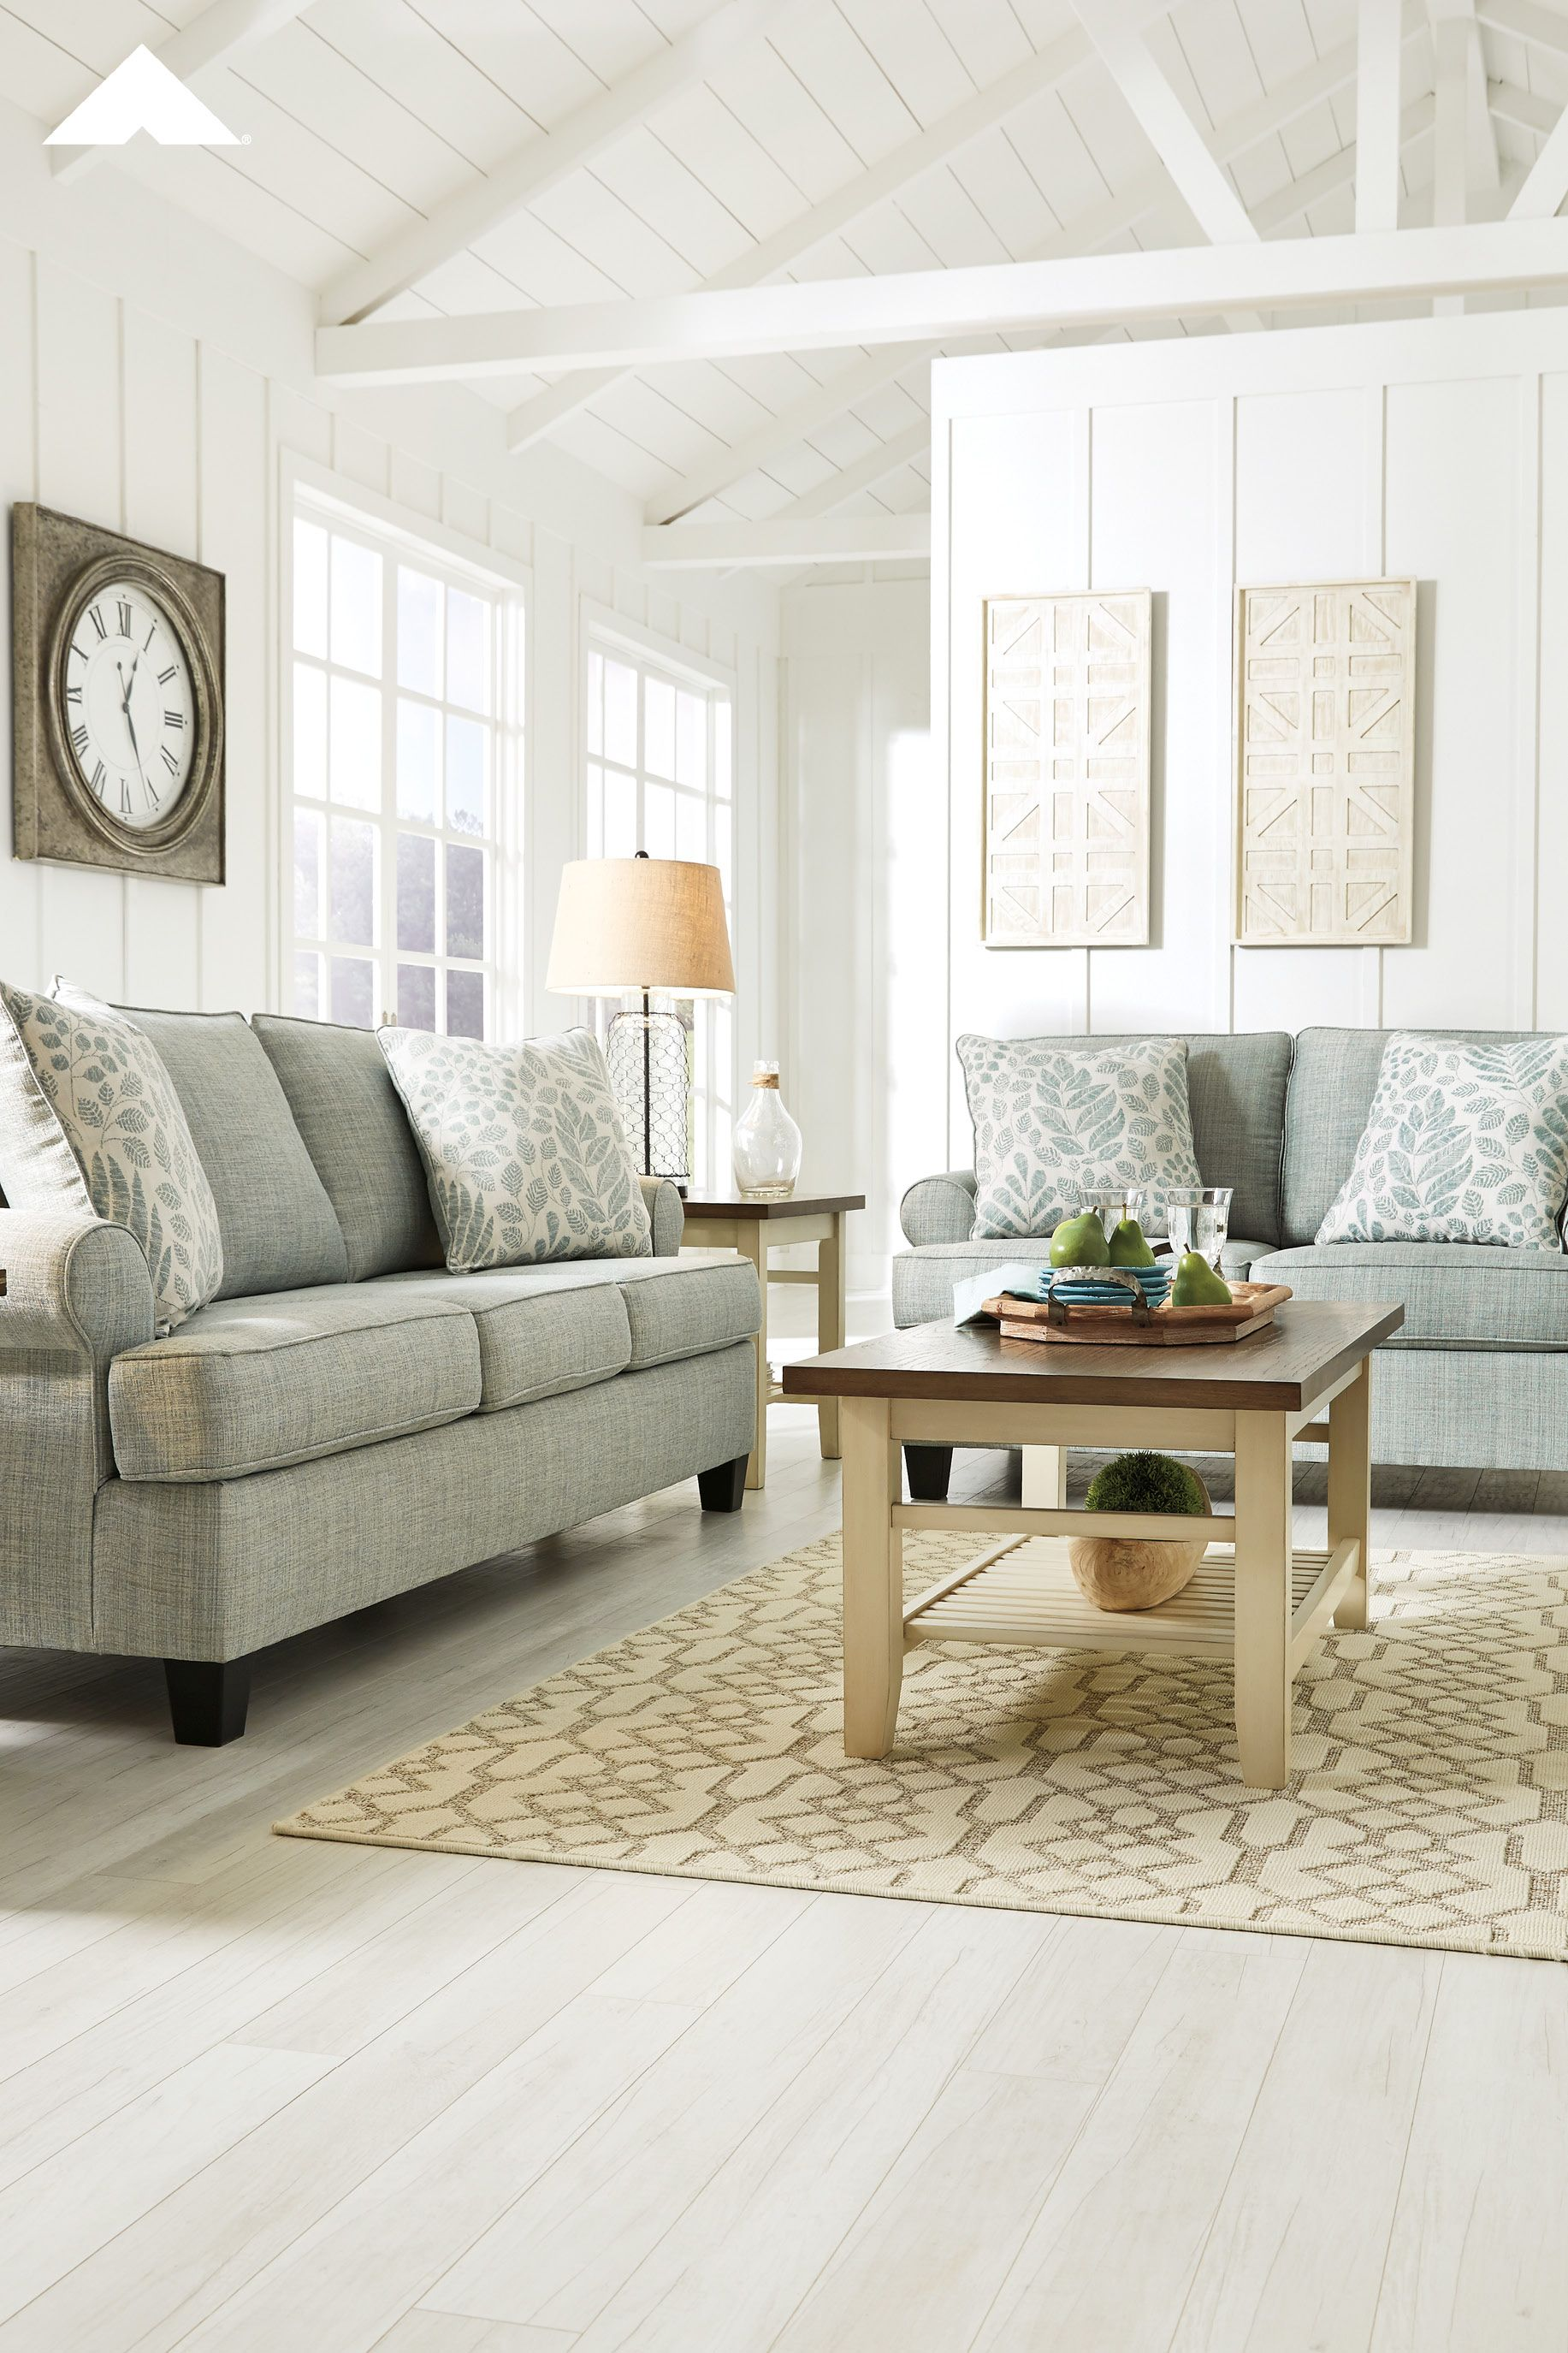 Kilarney Mist Sofa Dressed To Impress In A Linen Weave Upholstery Loaded With Multi Textural Interest This Sofa In Mist Love Seat Furniture Cushions On Sofa